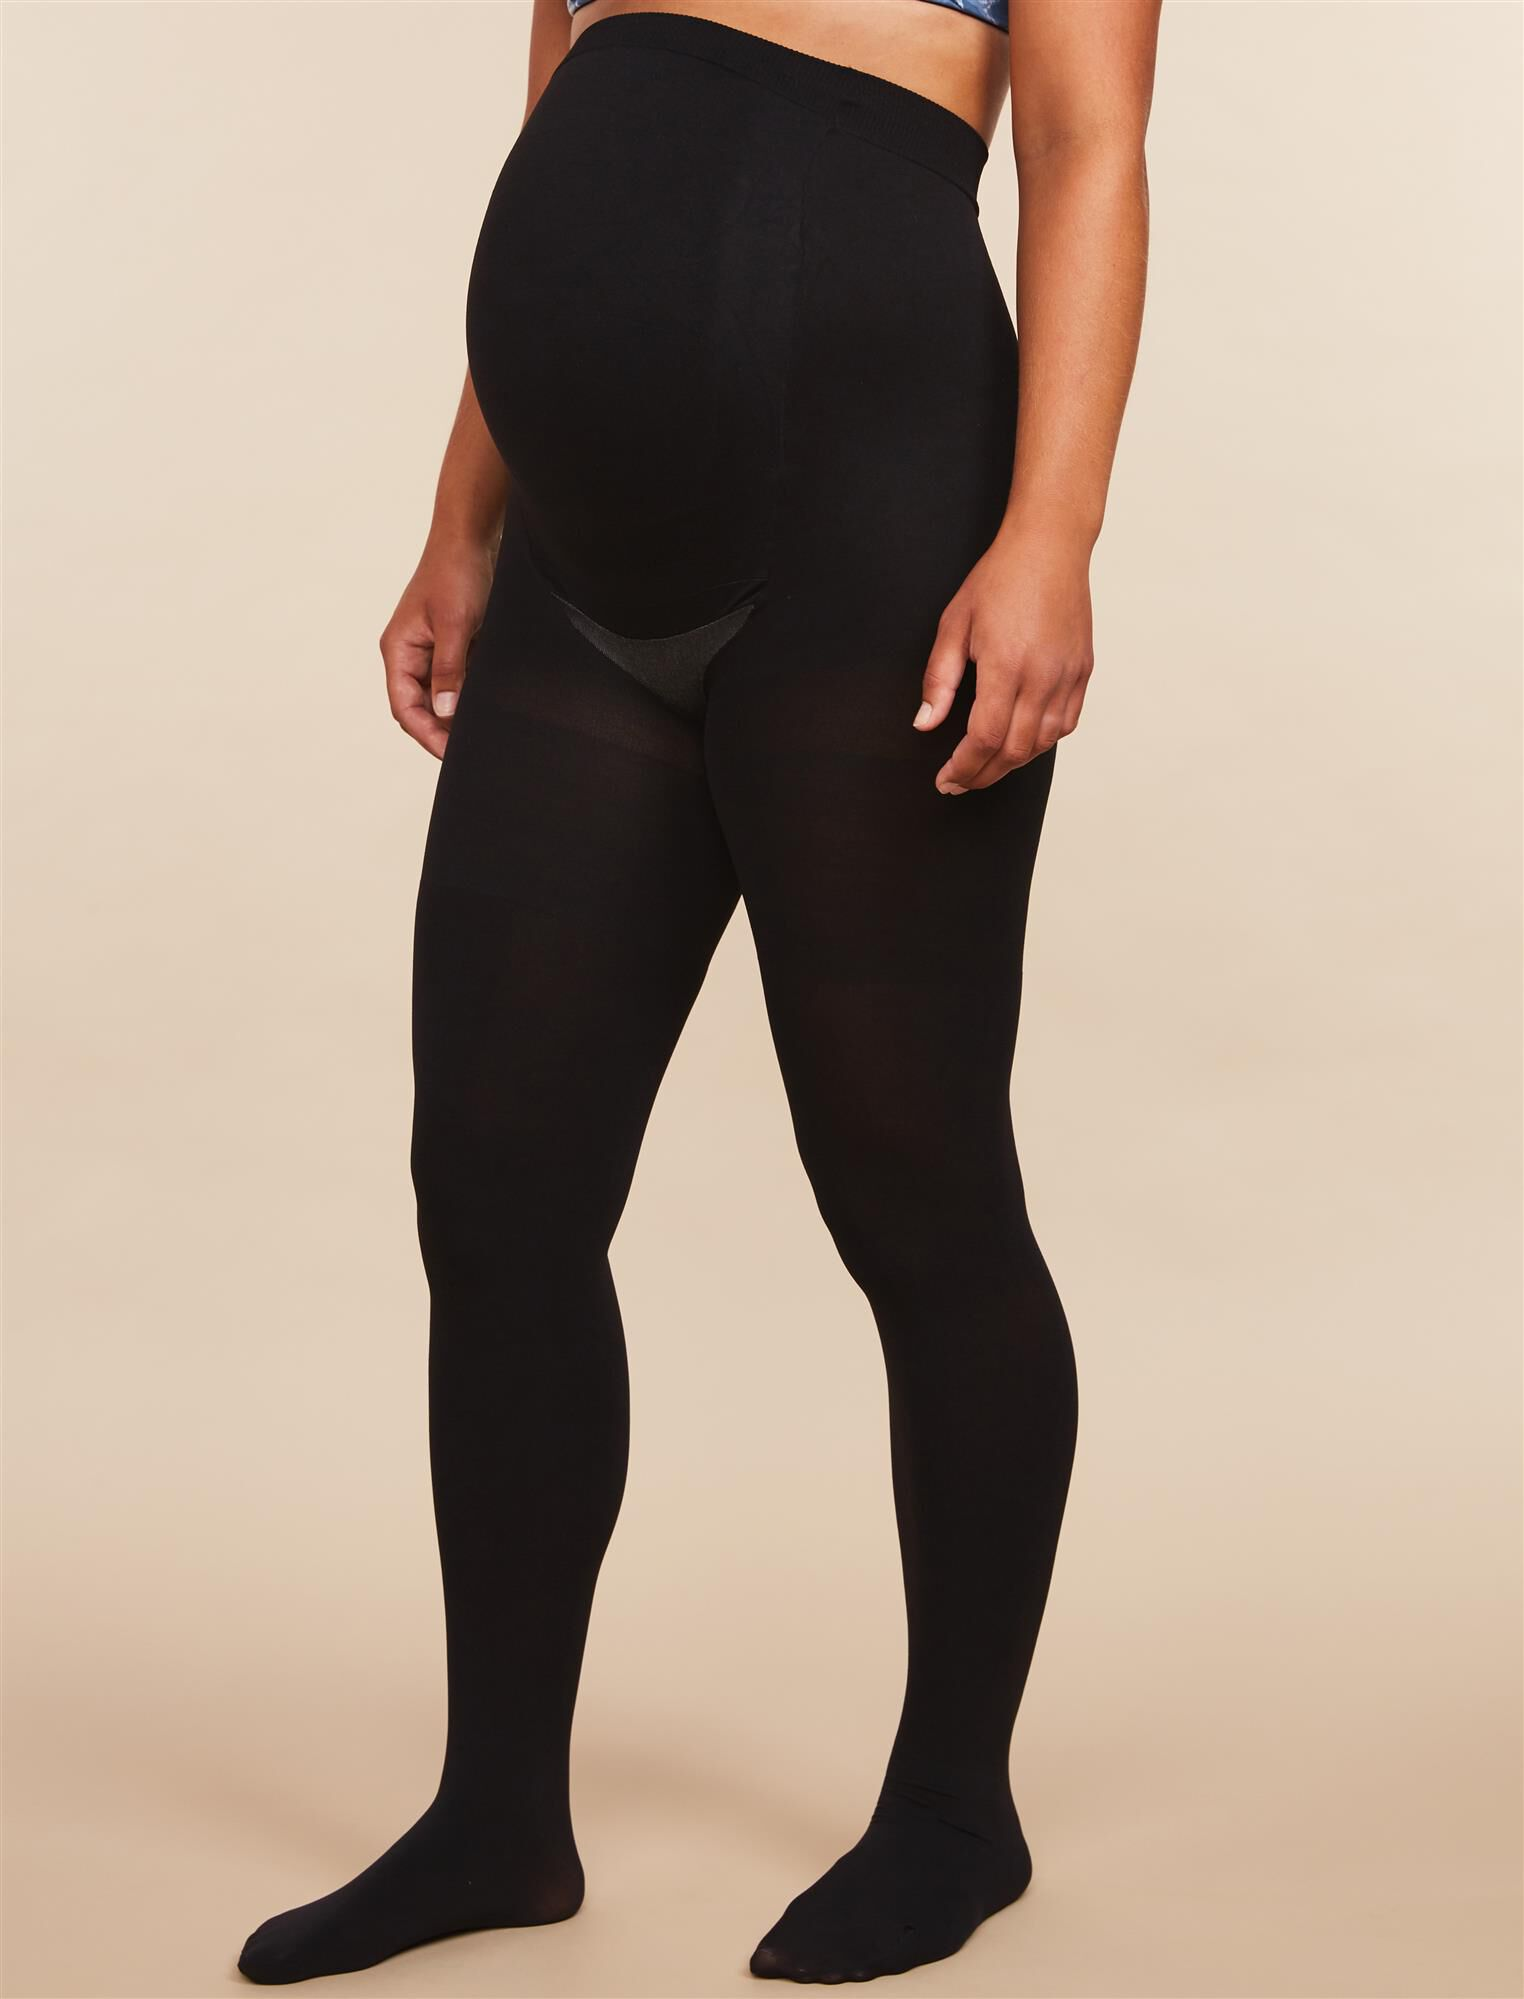 Assets By Sara Blakely Opaque Maternity Tights